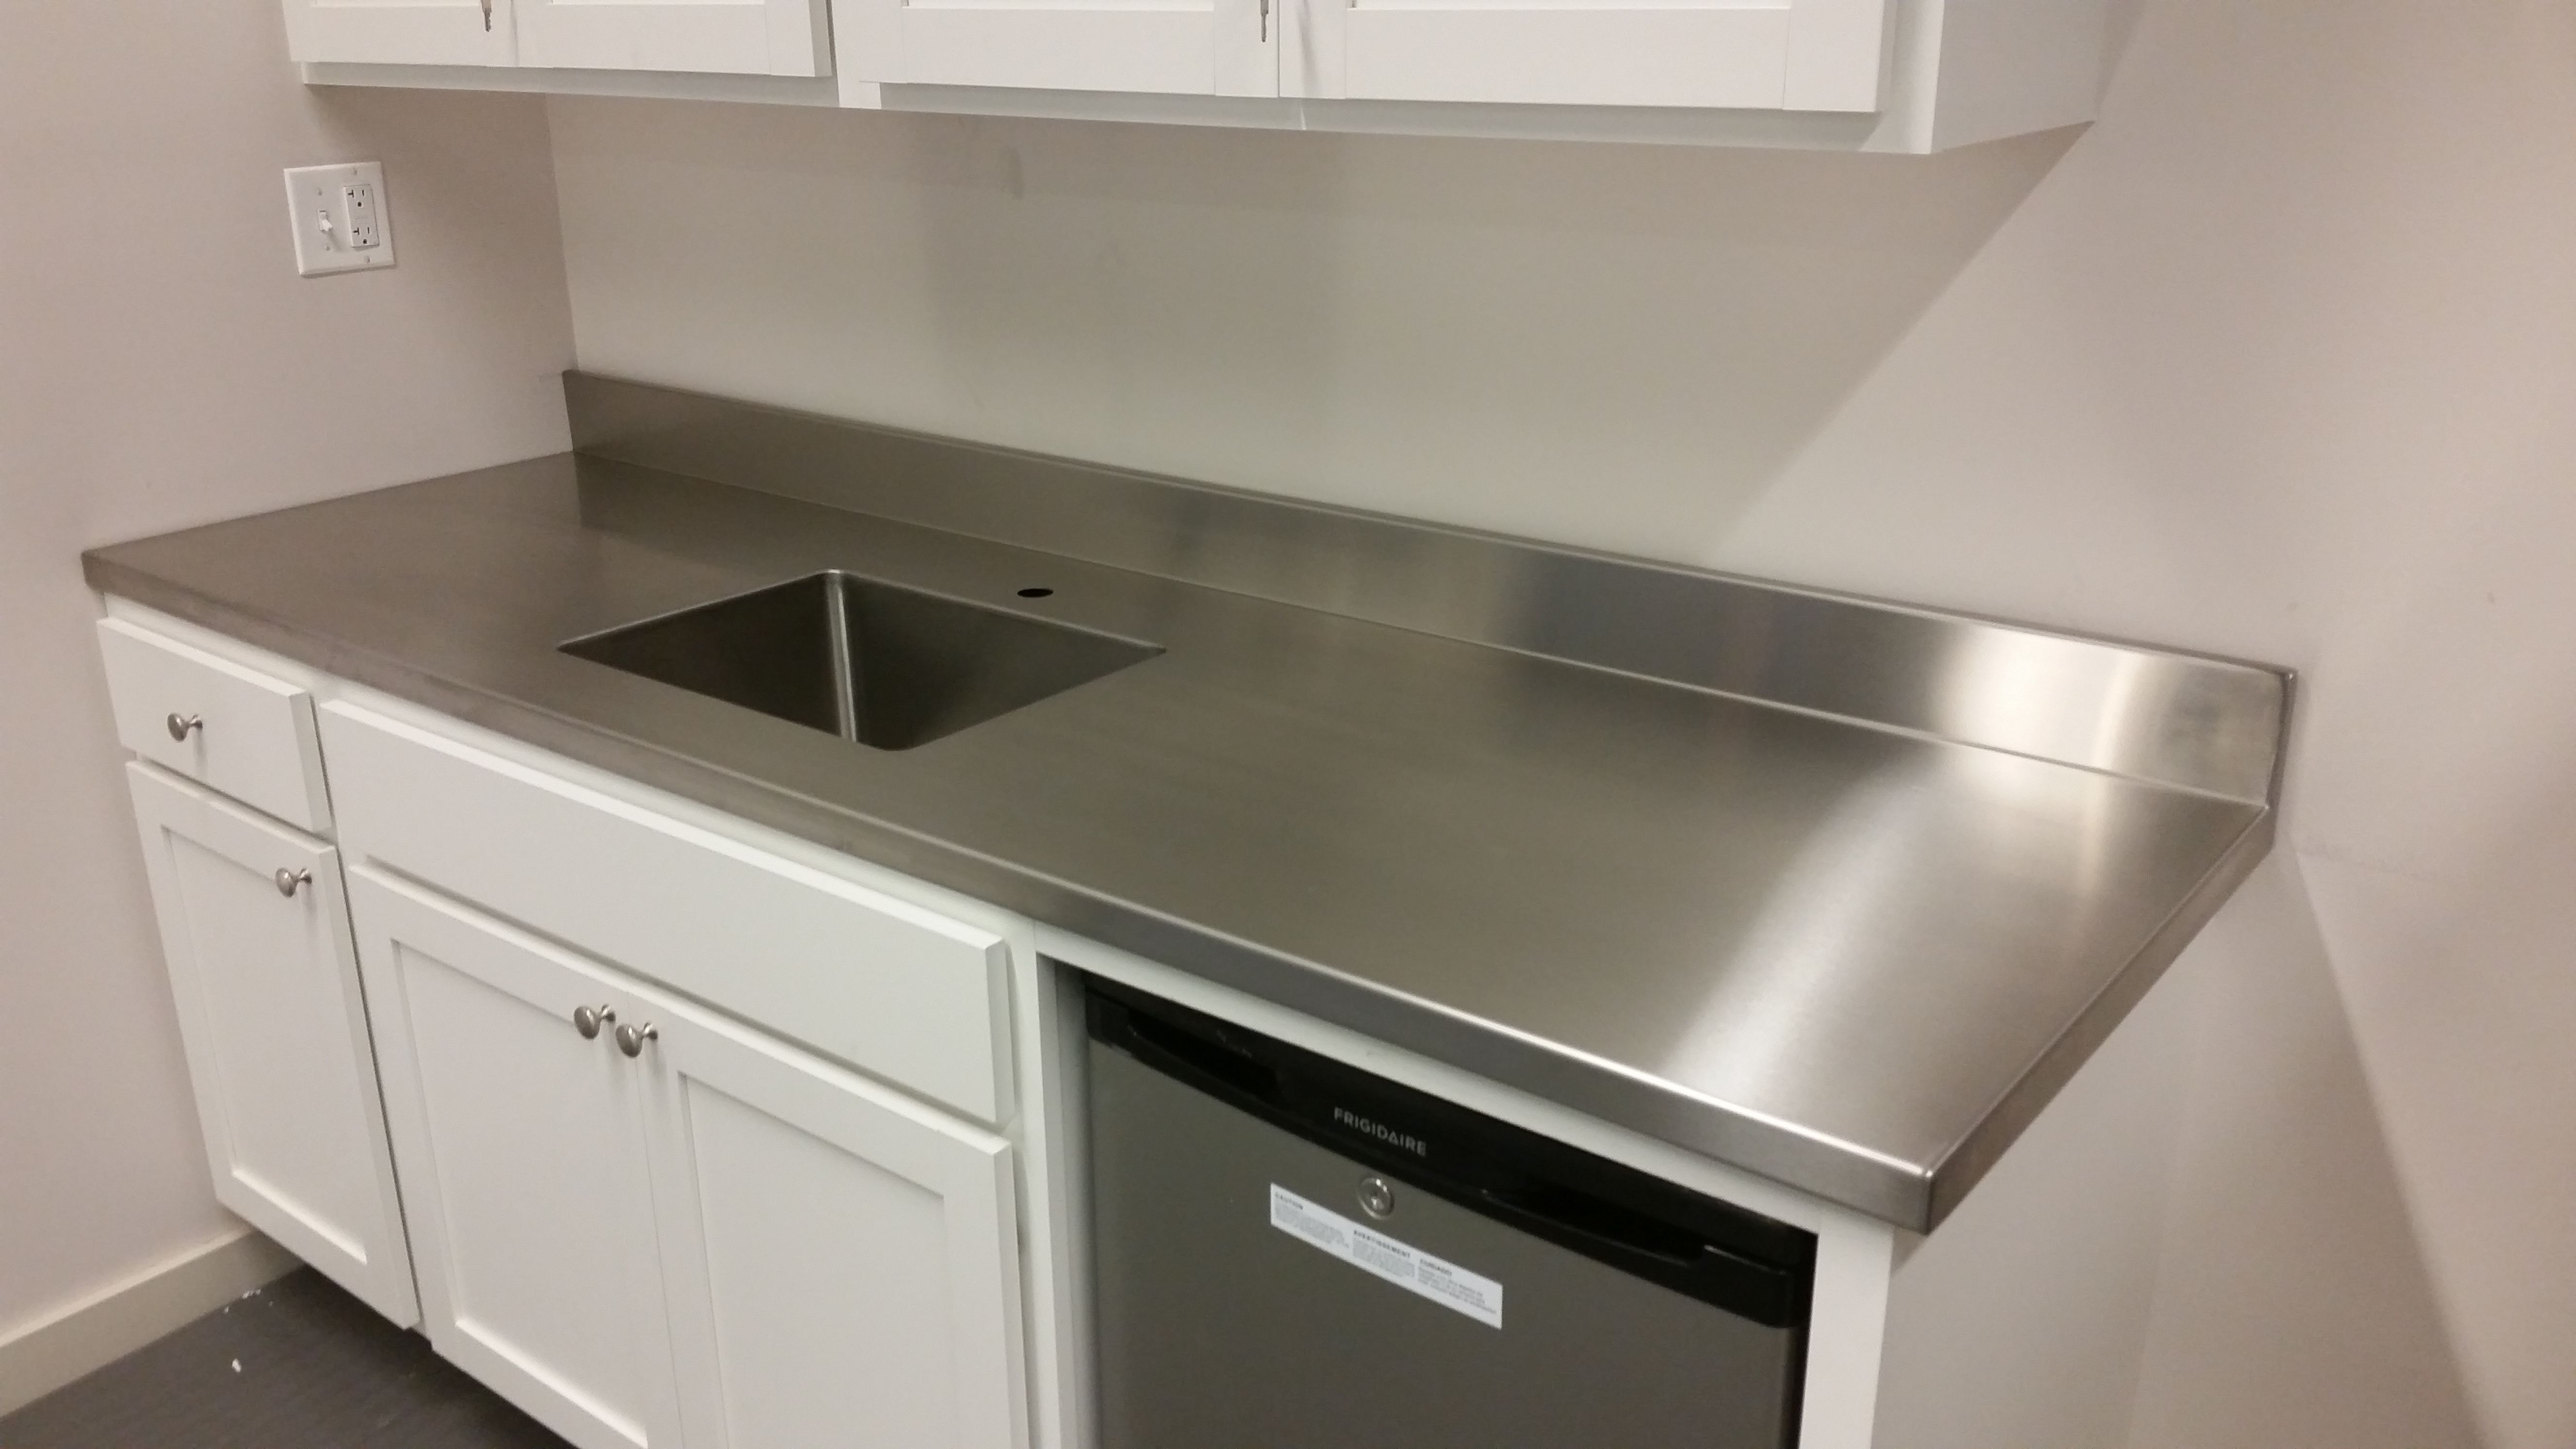 Stainless Steel Countertop Paws Jpg 5312 2988 Countertops